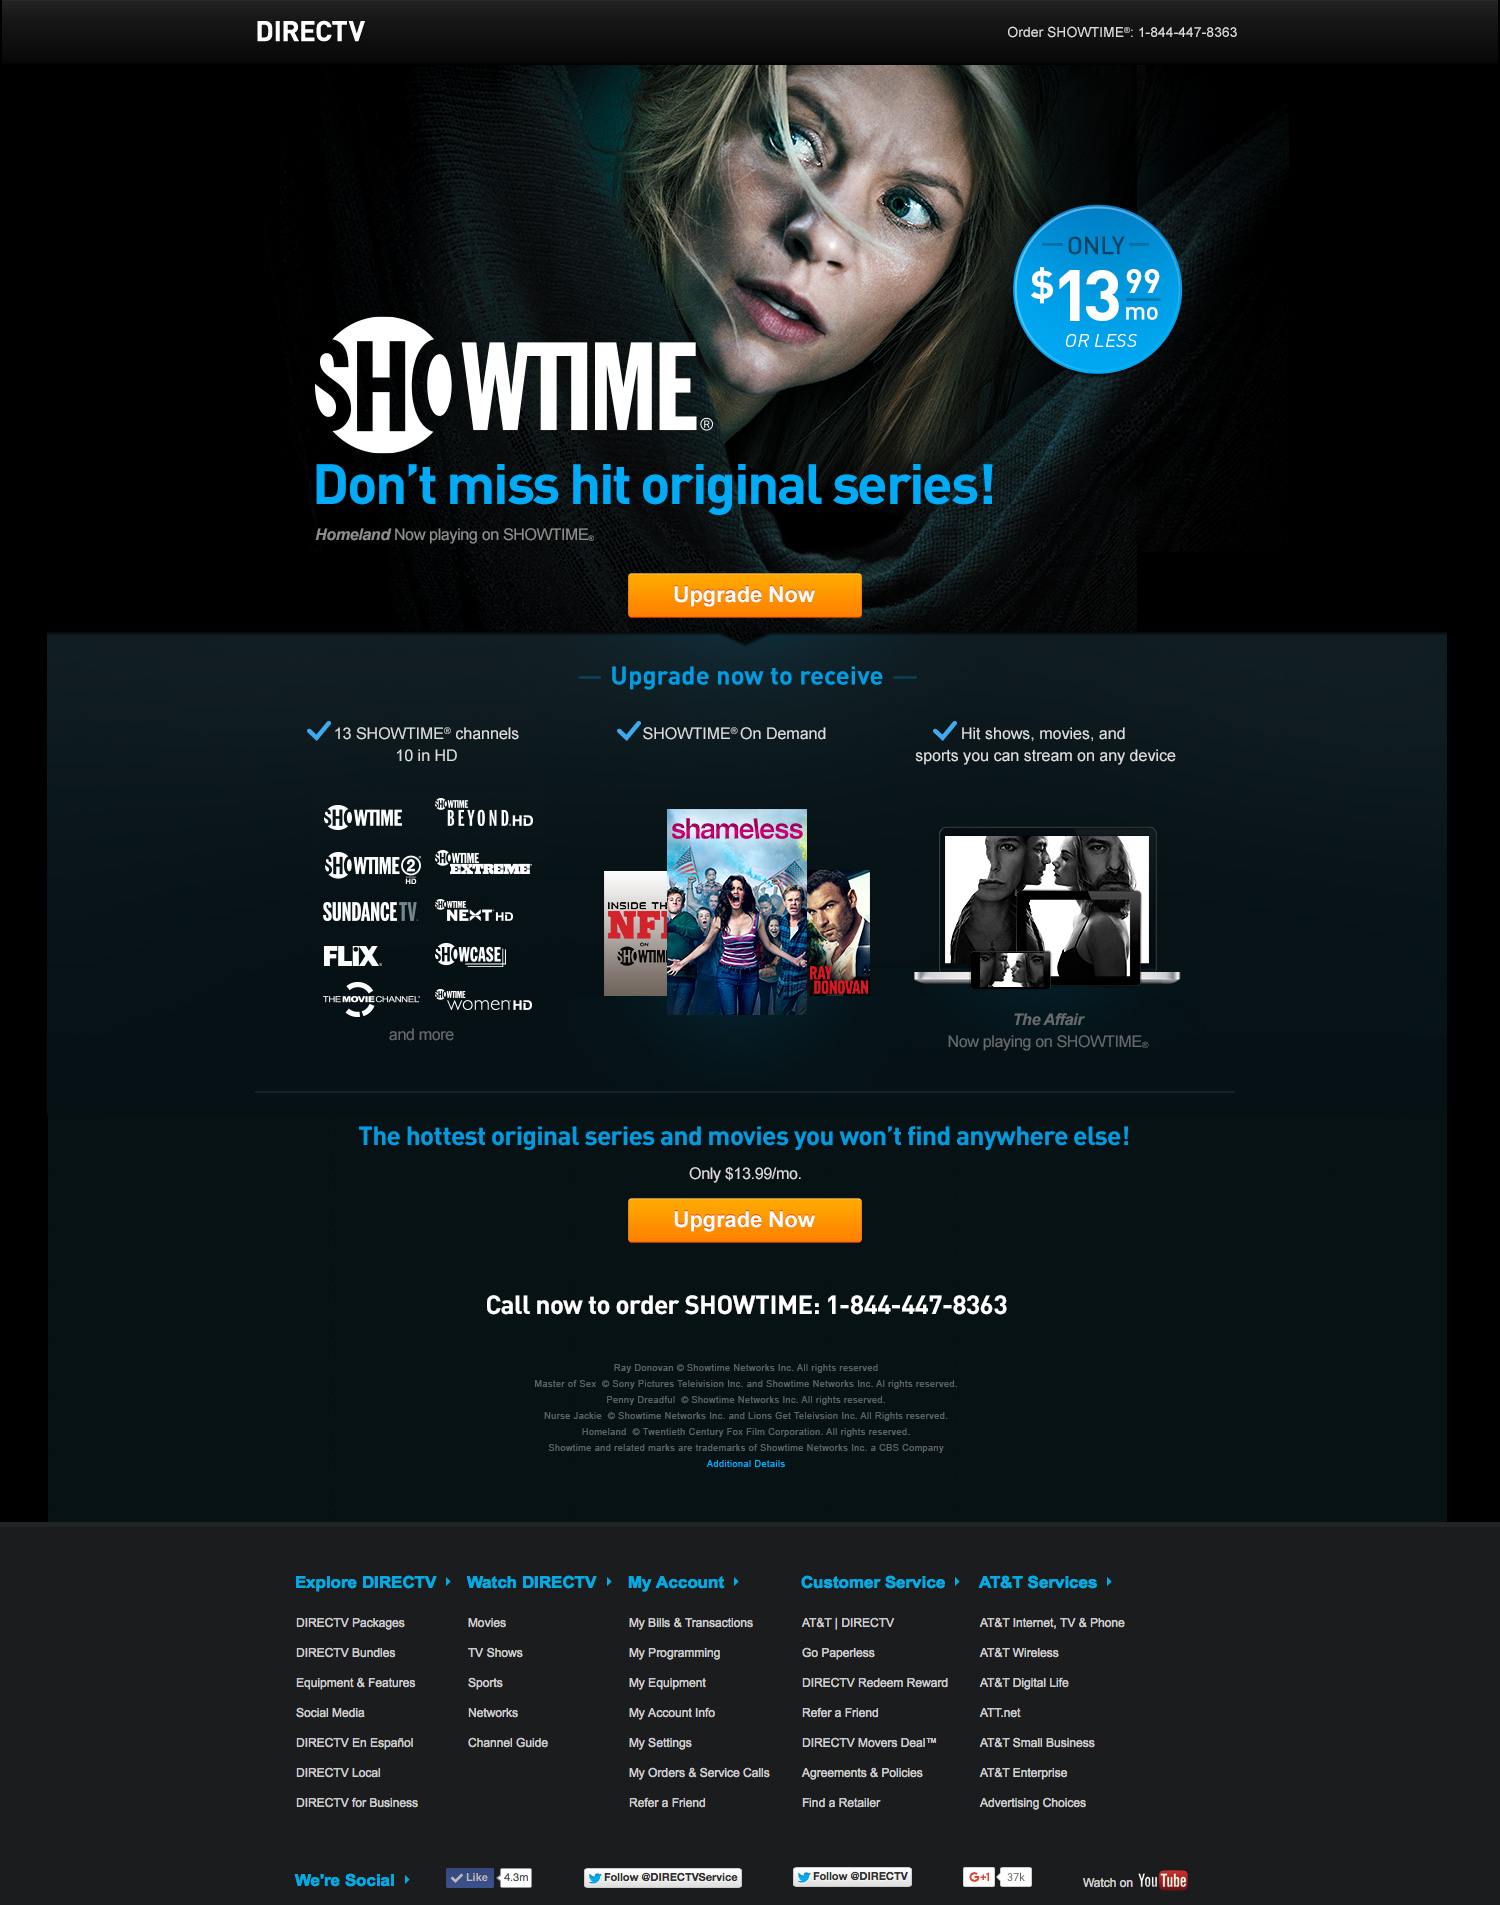 DIRECTV Optimized Landing Page